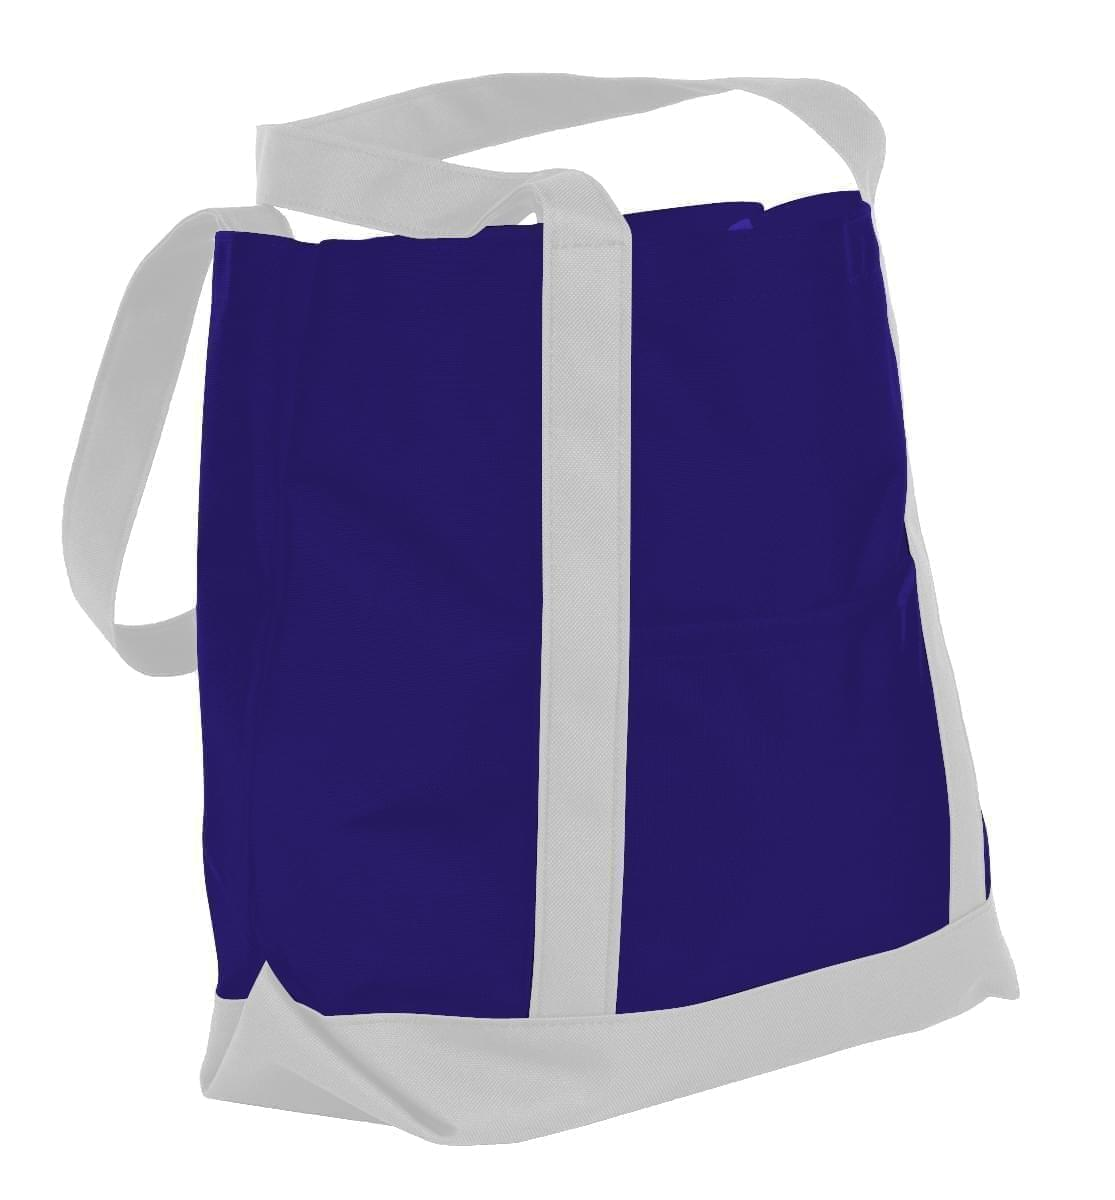 USA Made Nylon Poly Boat Tote Bags, Purple-White, XAACL1UAYP